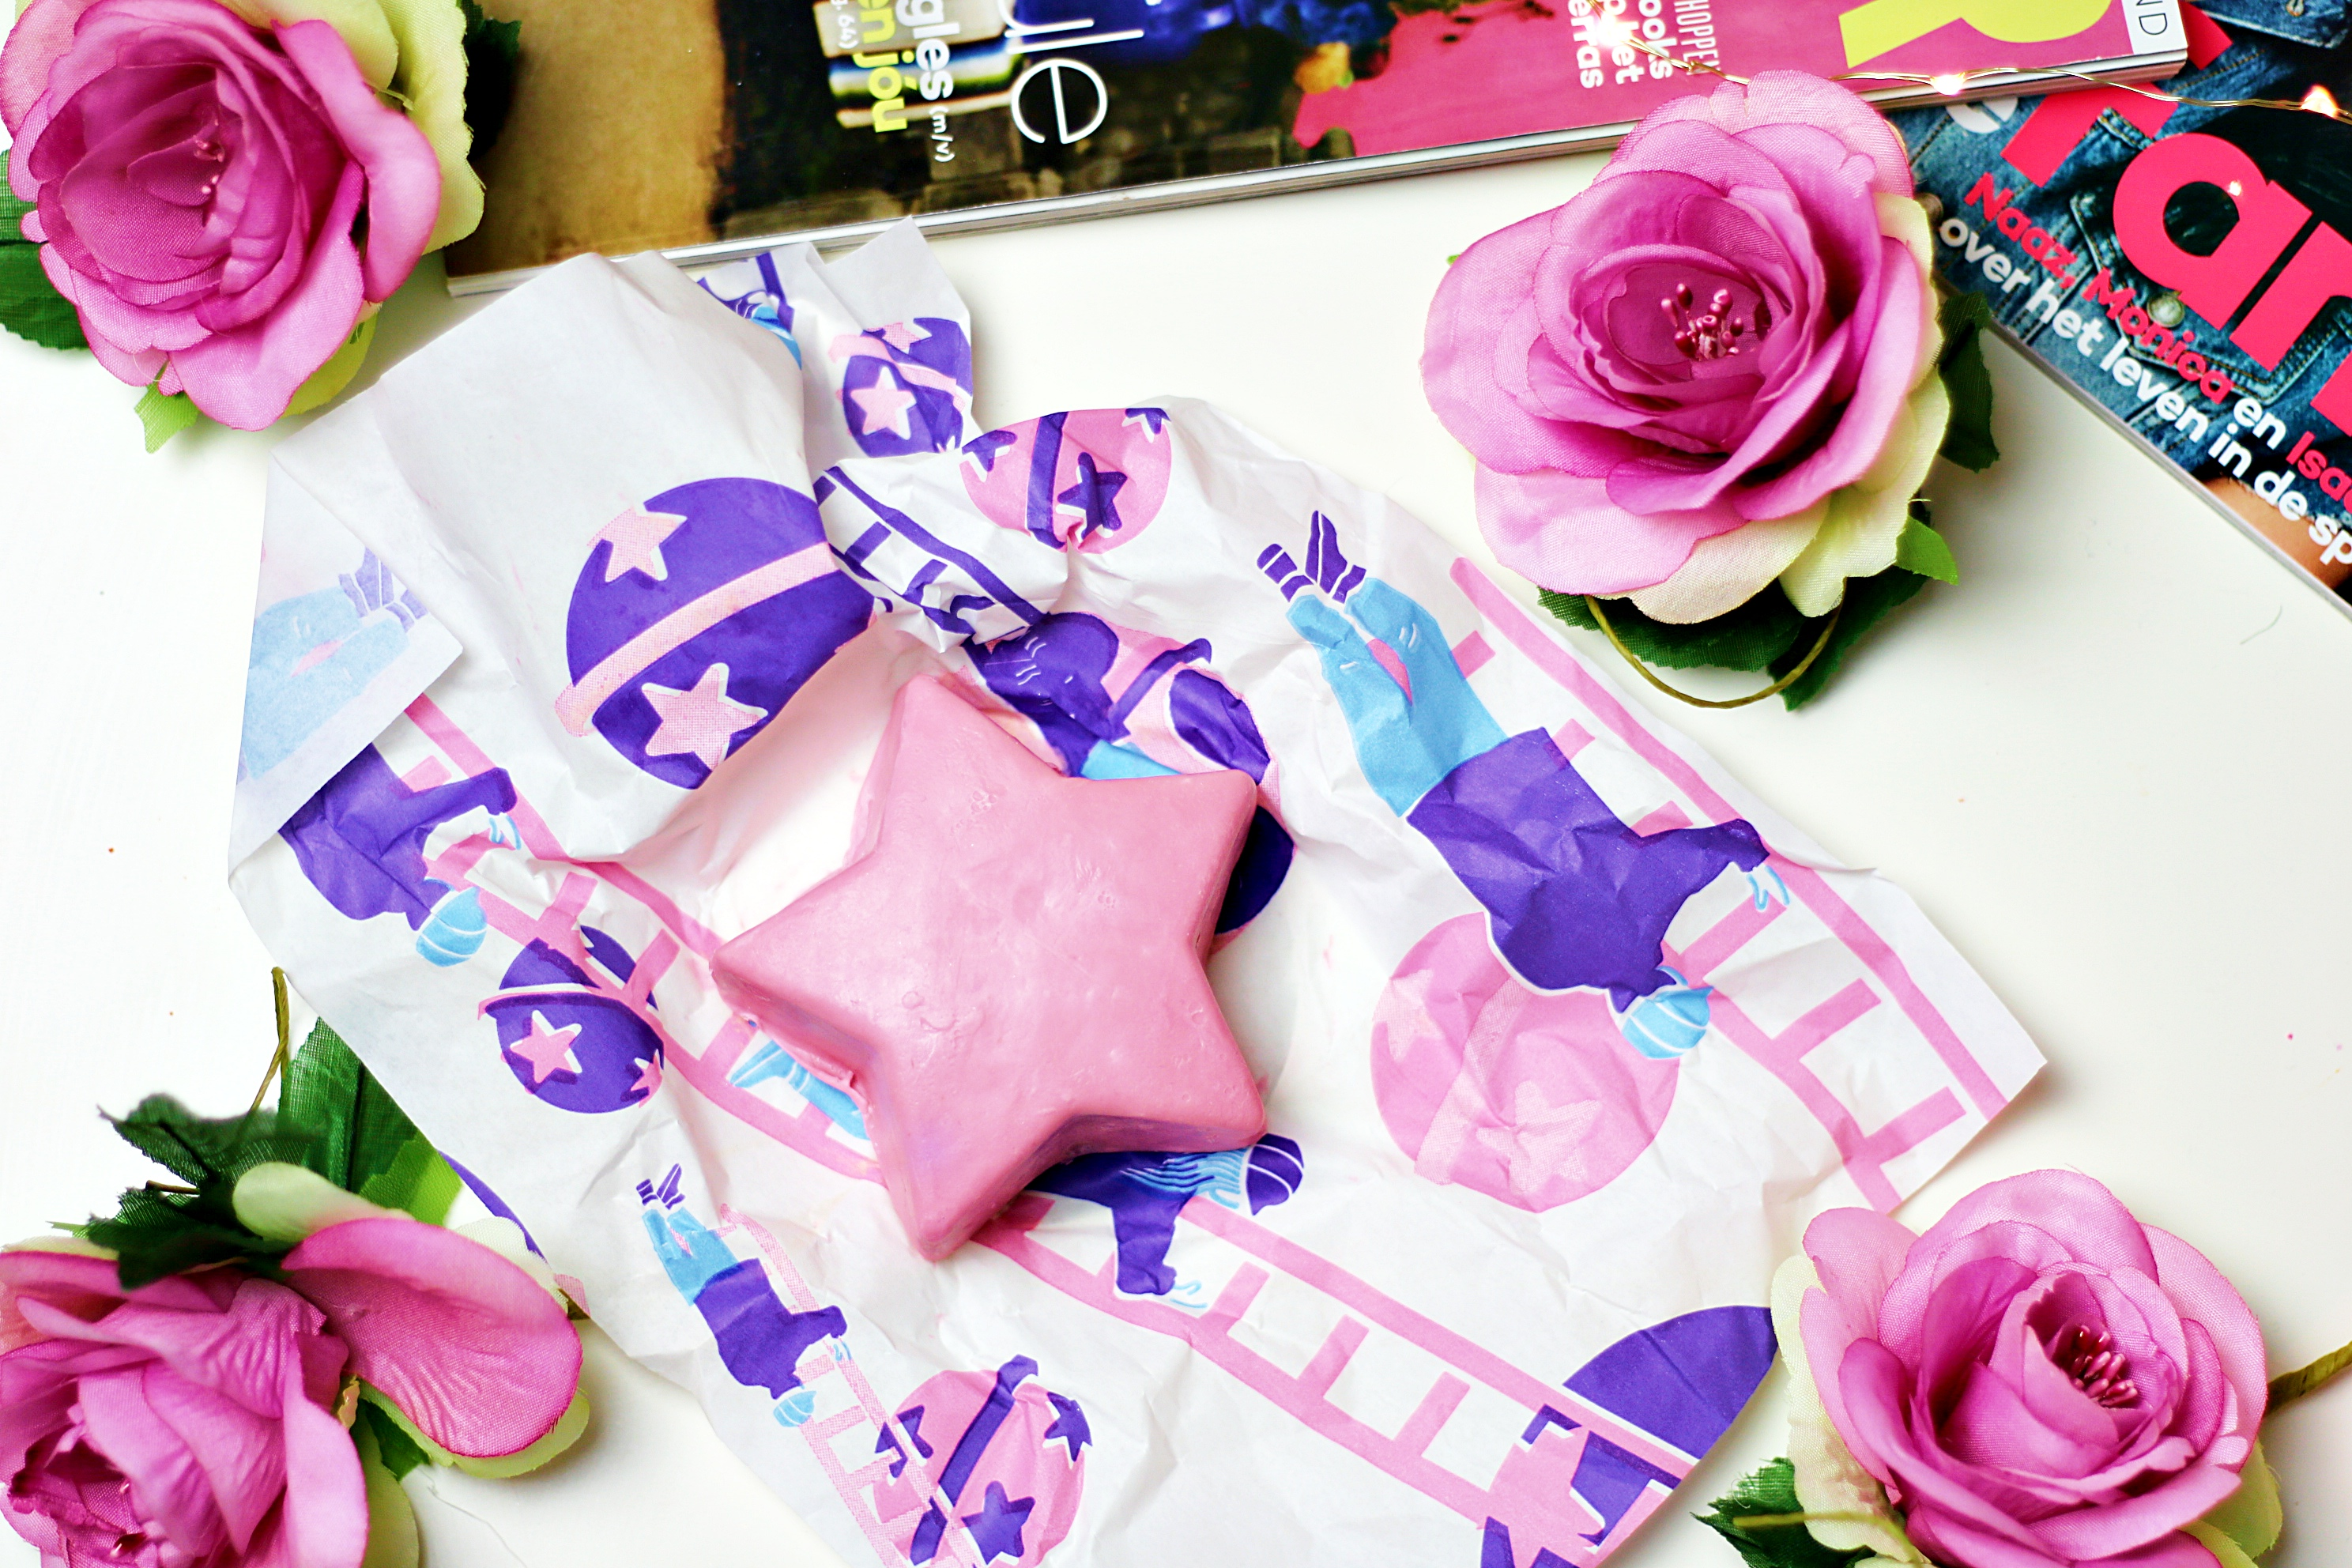 And Old-School Favourite: Lush Rock Star Soap